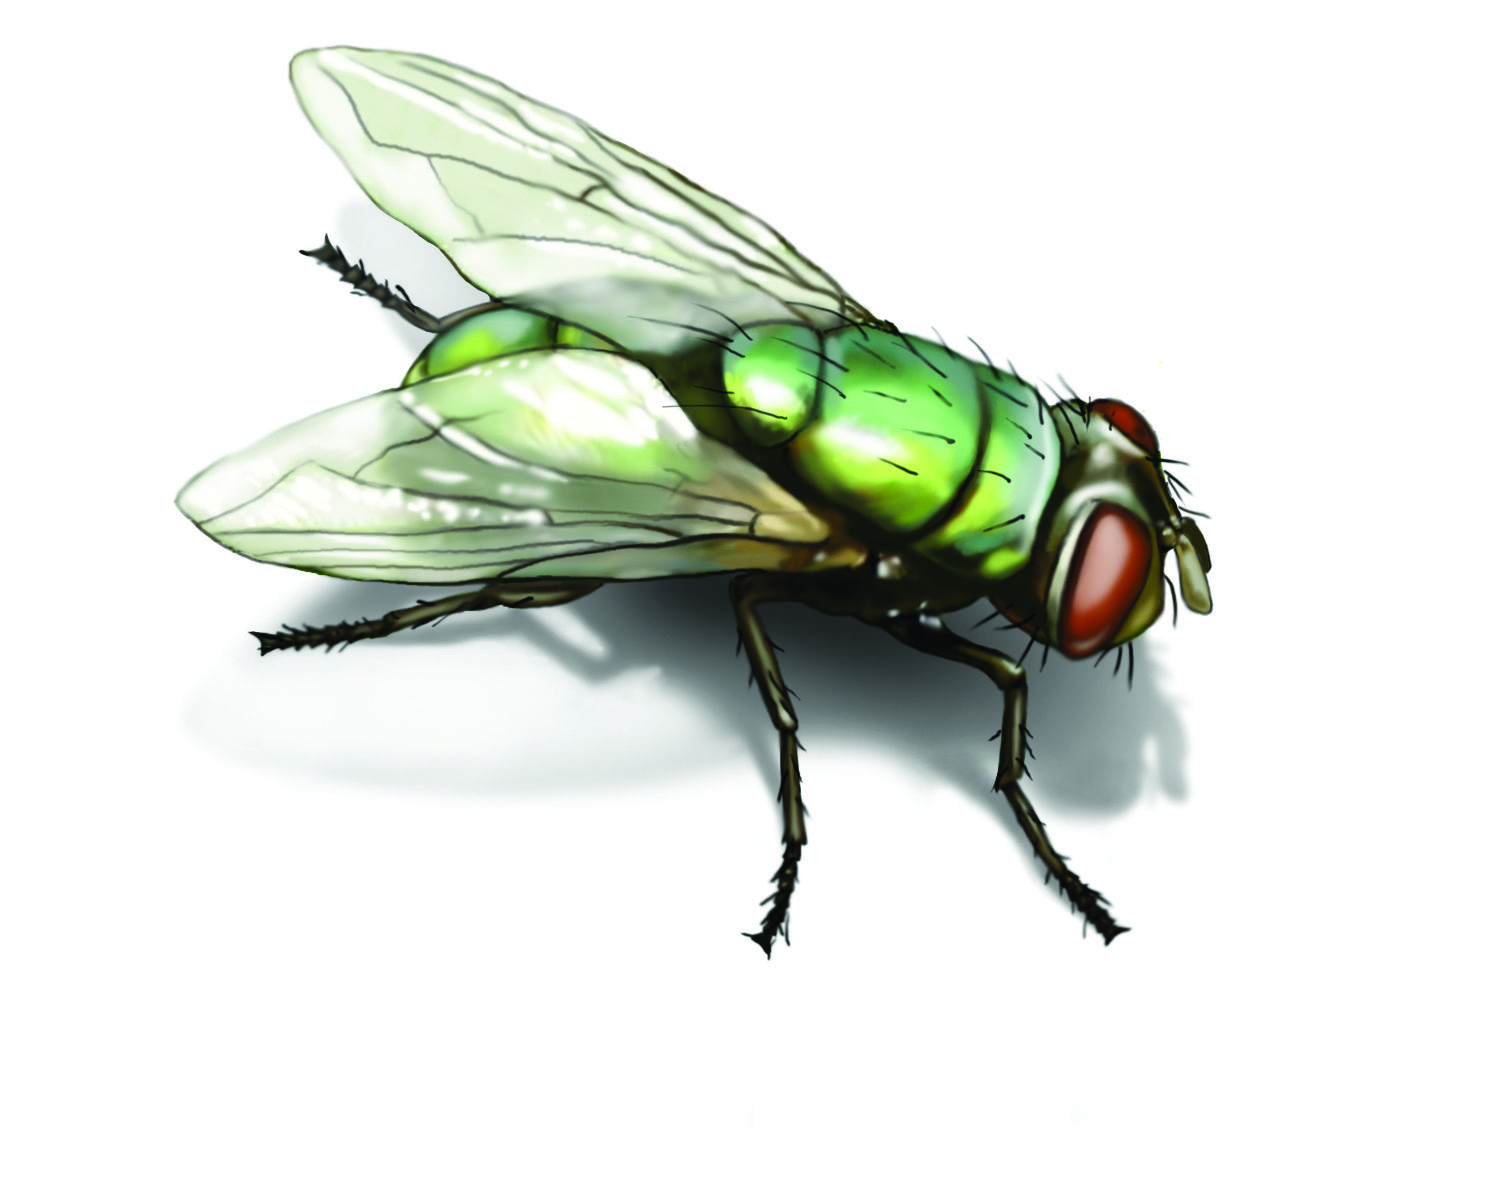 cd5f42e9b5dec6ccf18db15abe358520 - How To Get Rid Of Common Green Bottle Fly